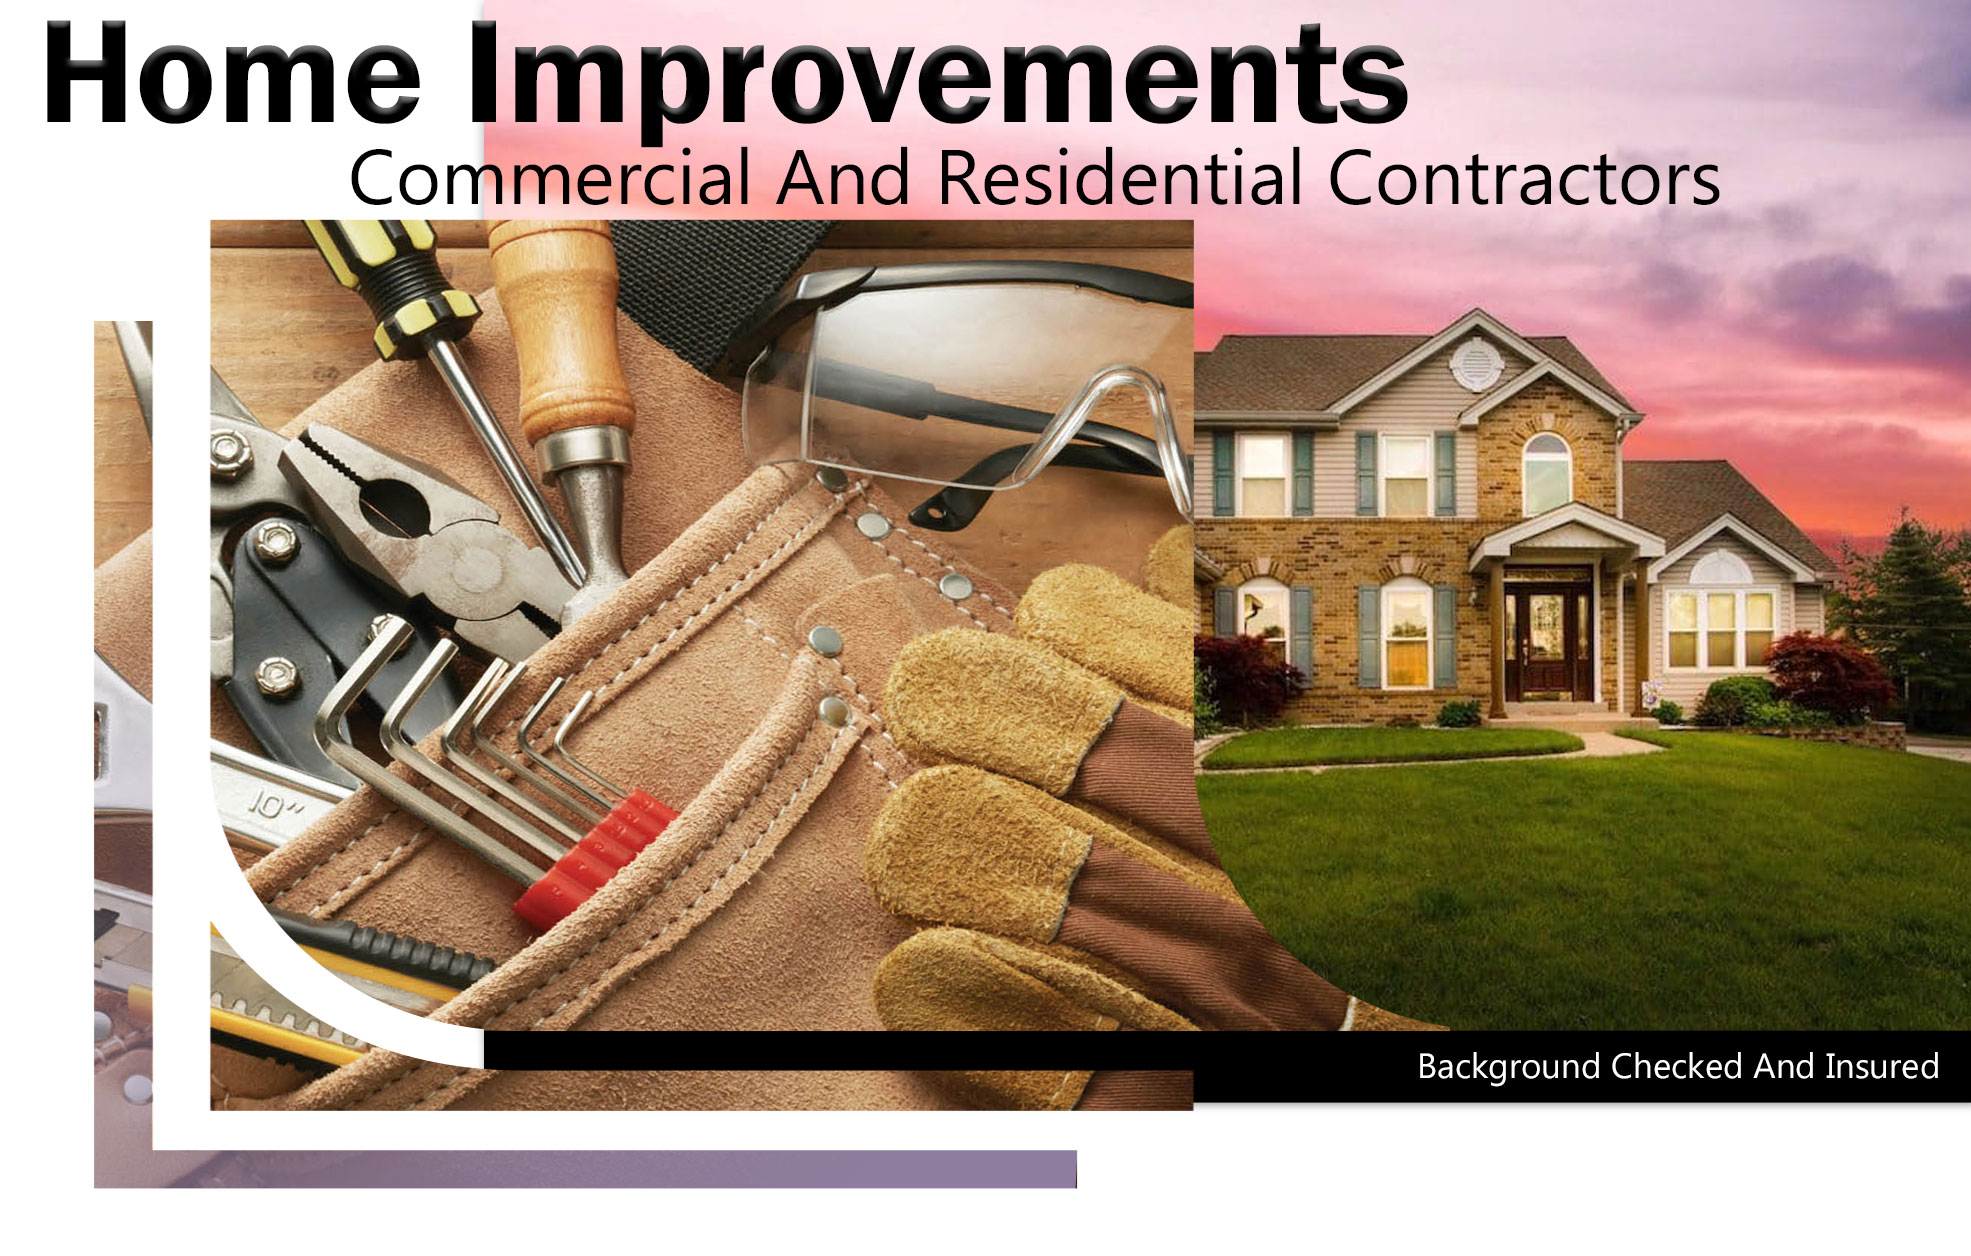 Small Task, LLC Website Banner Home Improvements And Repairs, Residential And Commercial Contractors